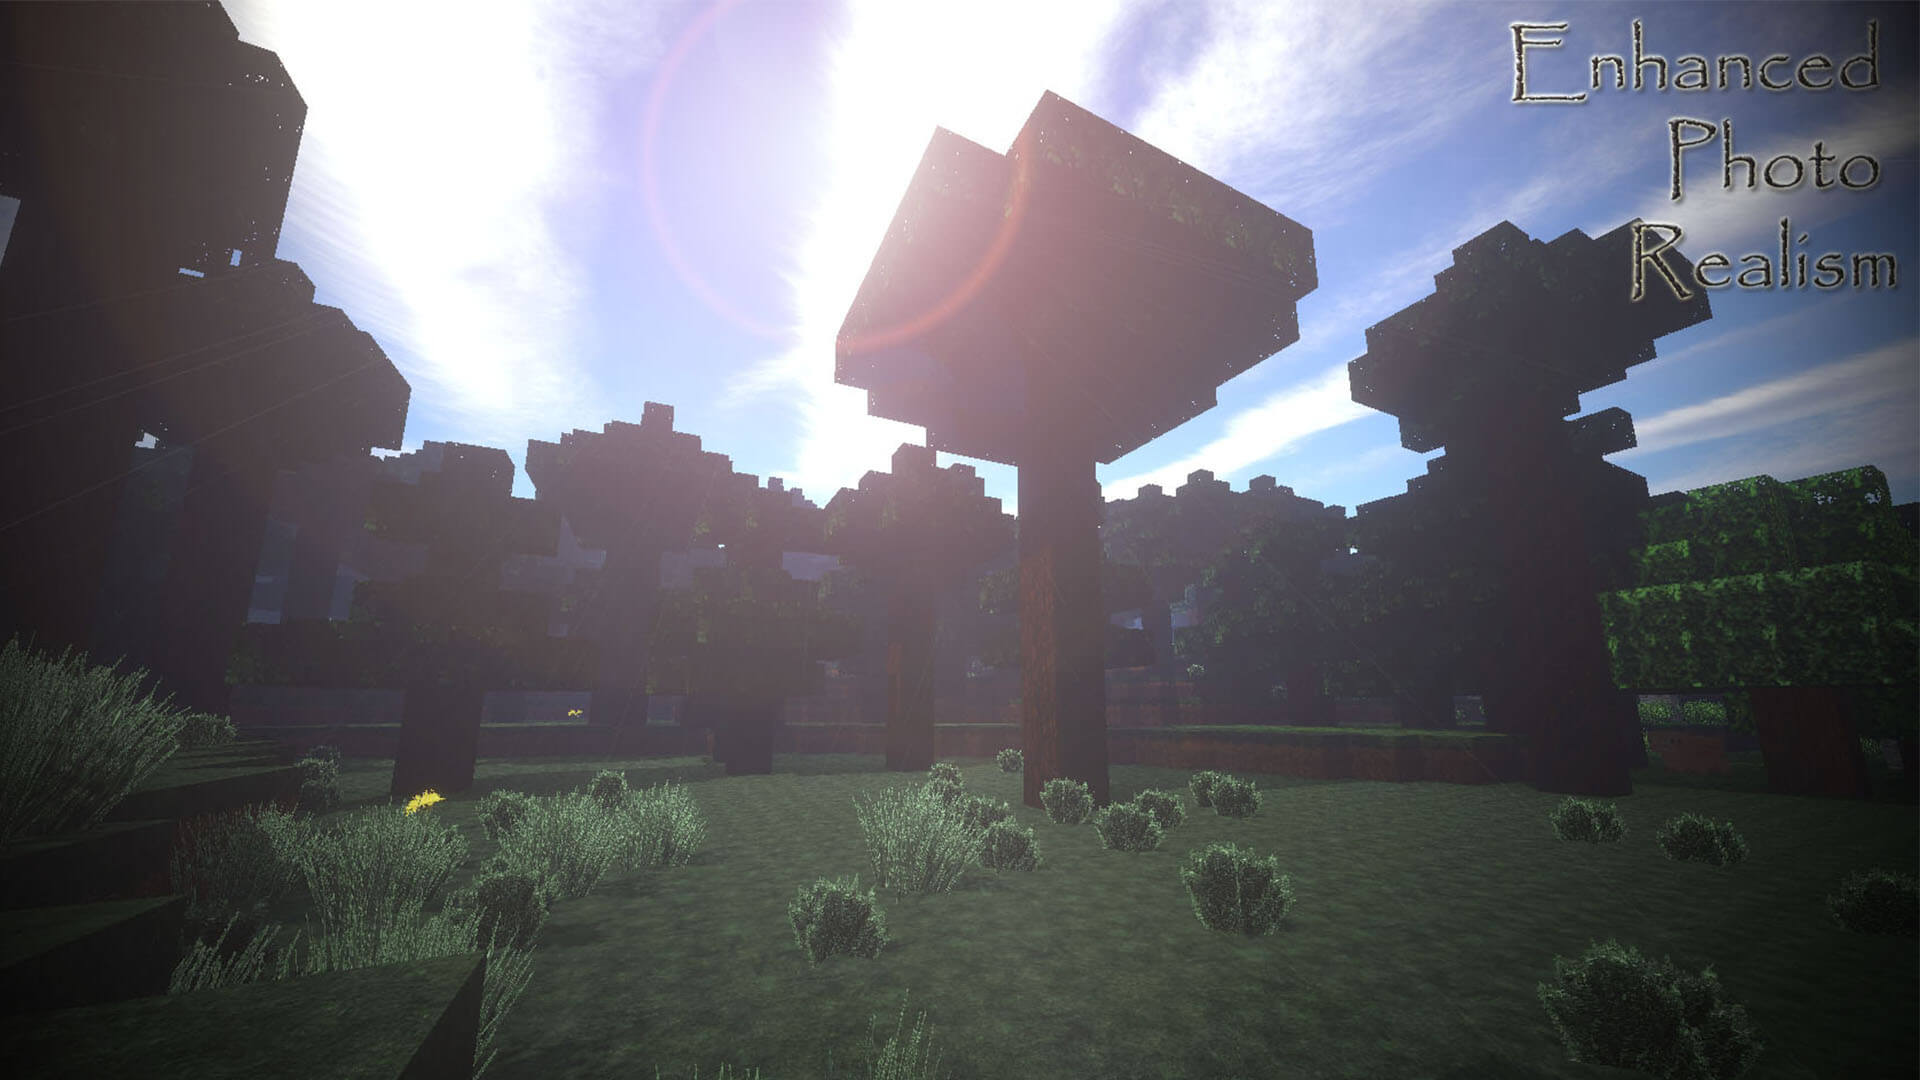 LB Photo Realism Texture Pack Image 5